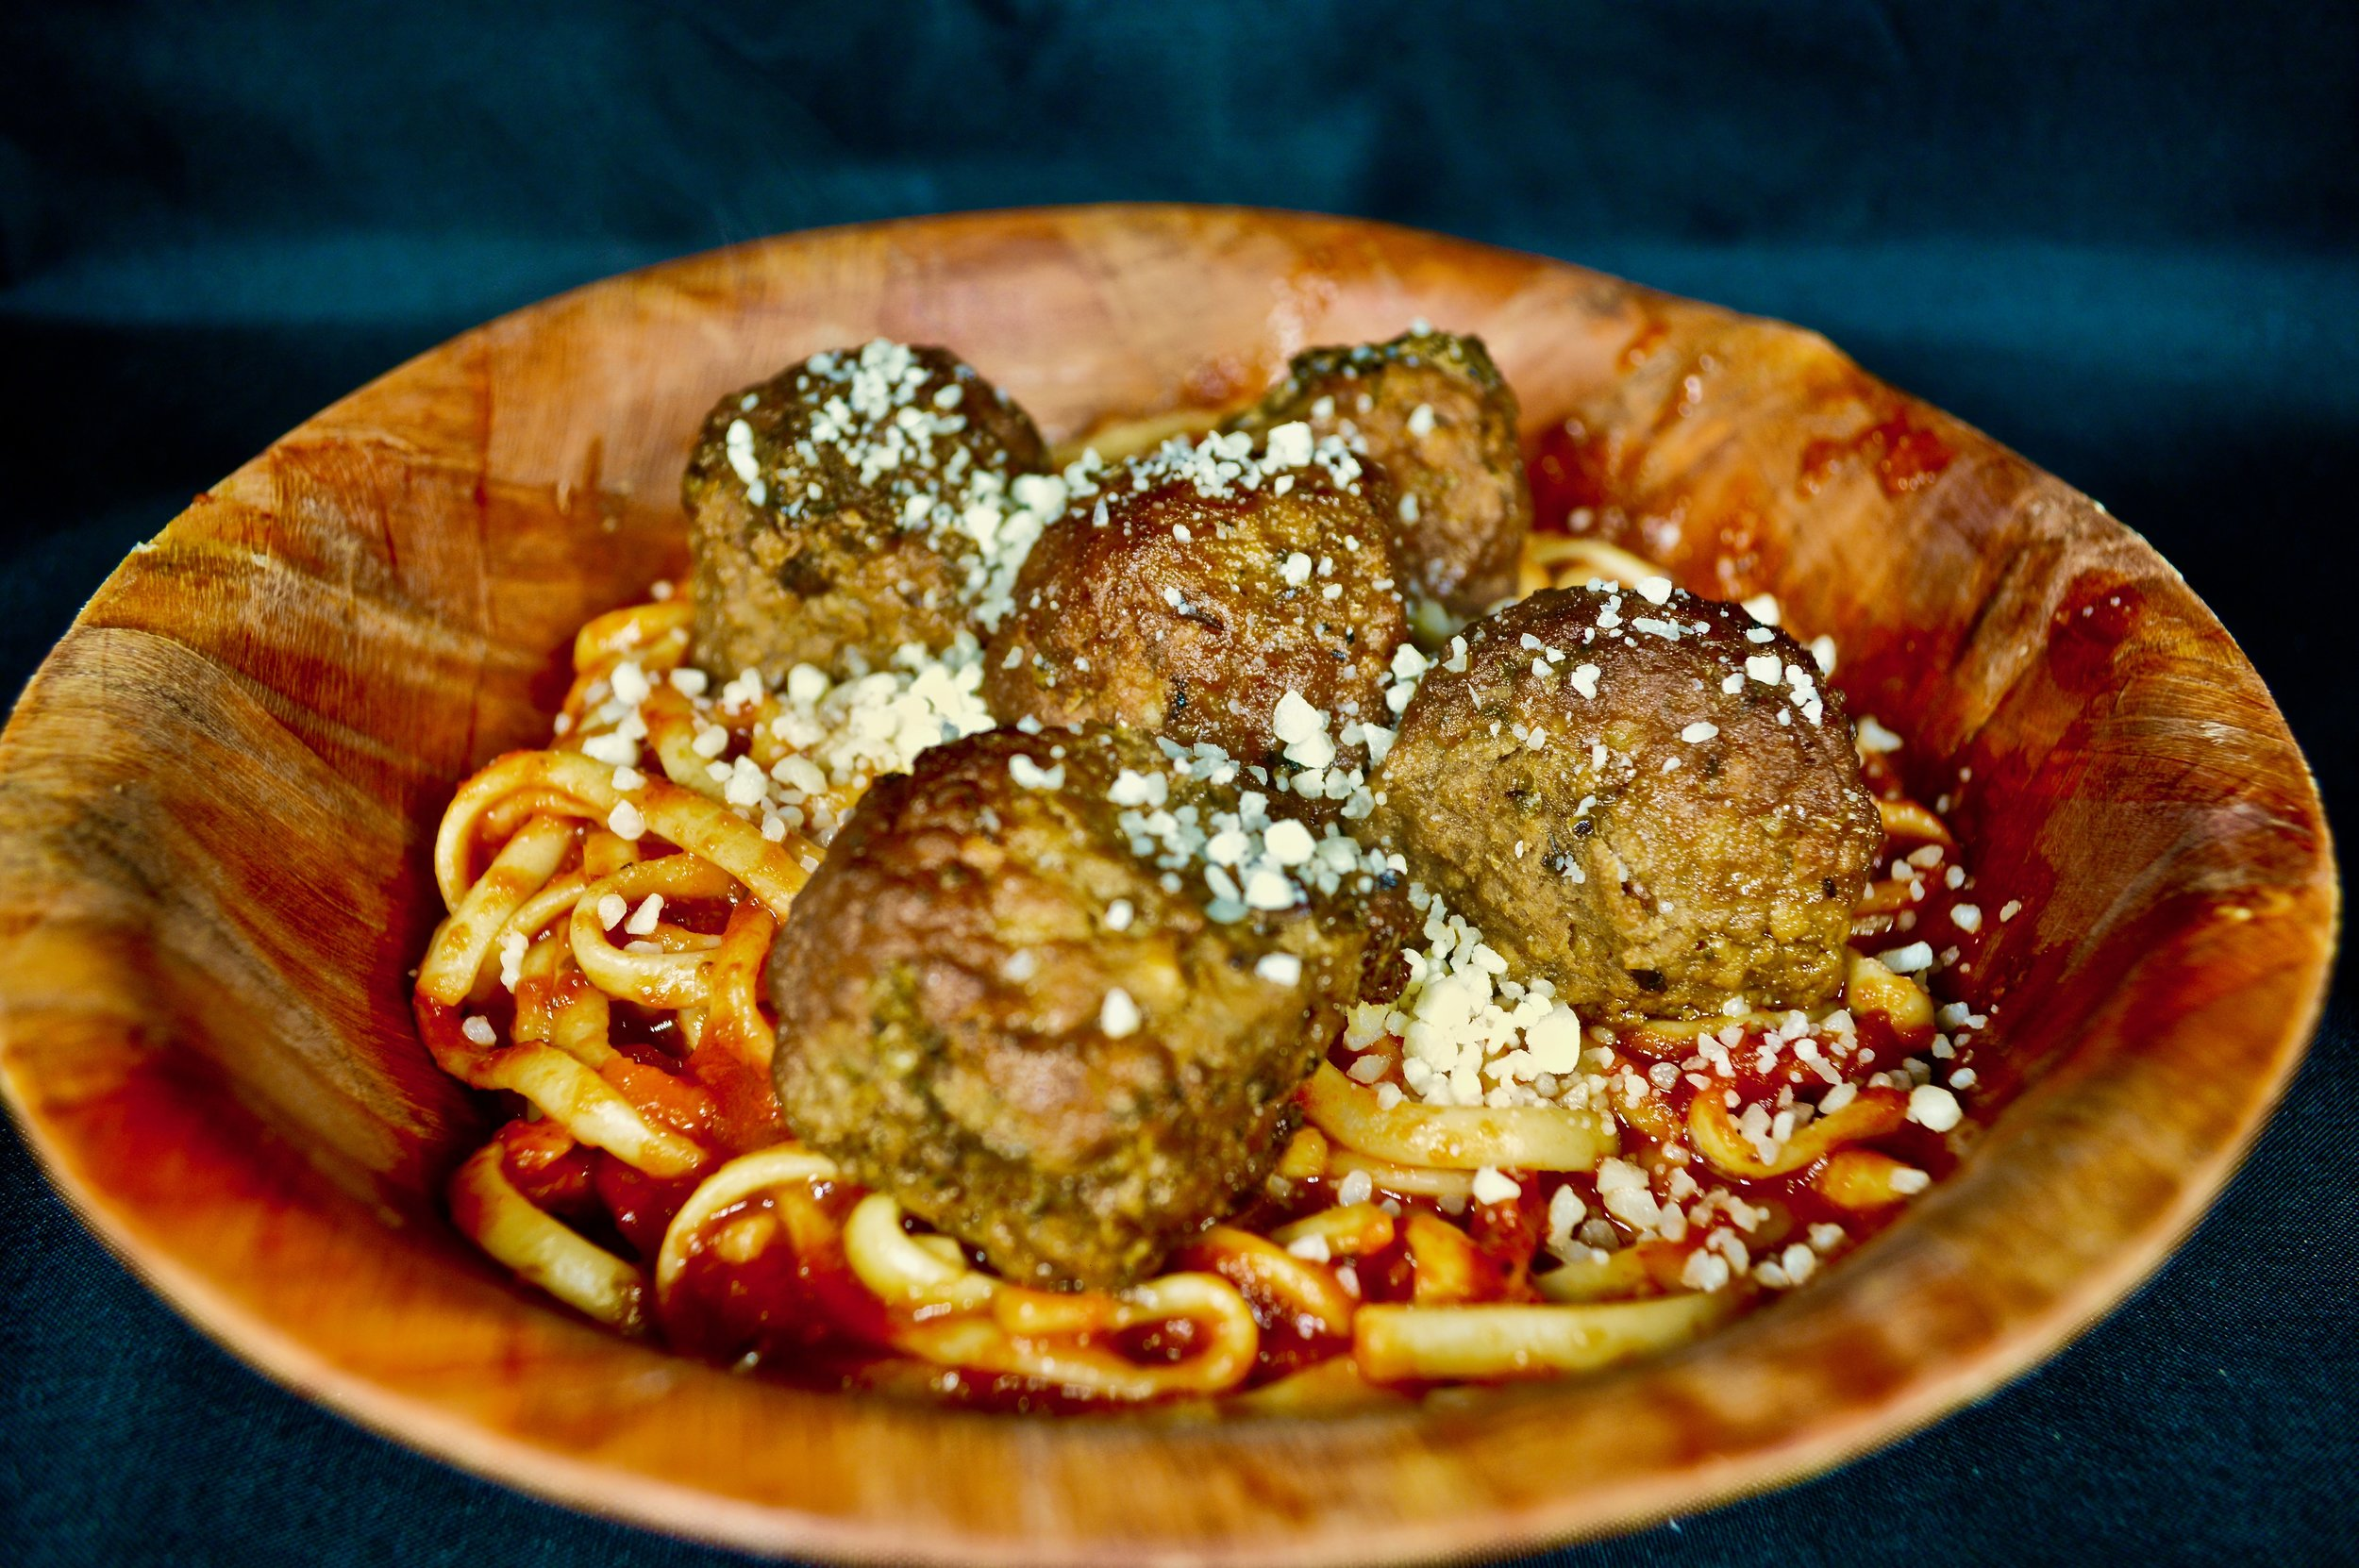 Spagehitti And Meatballs.jpeg